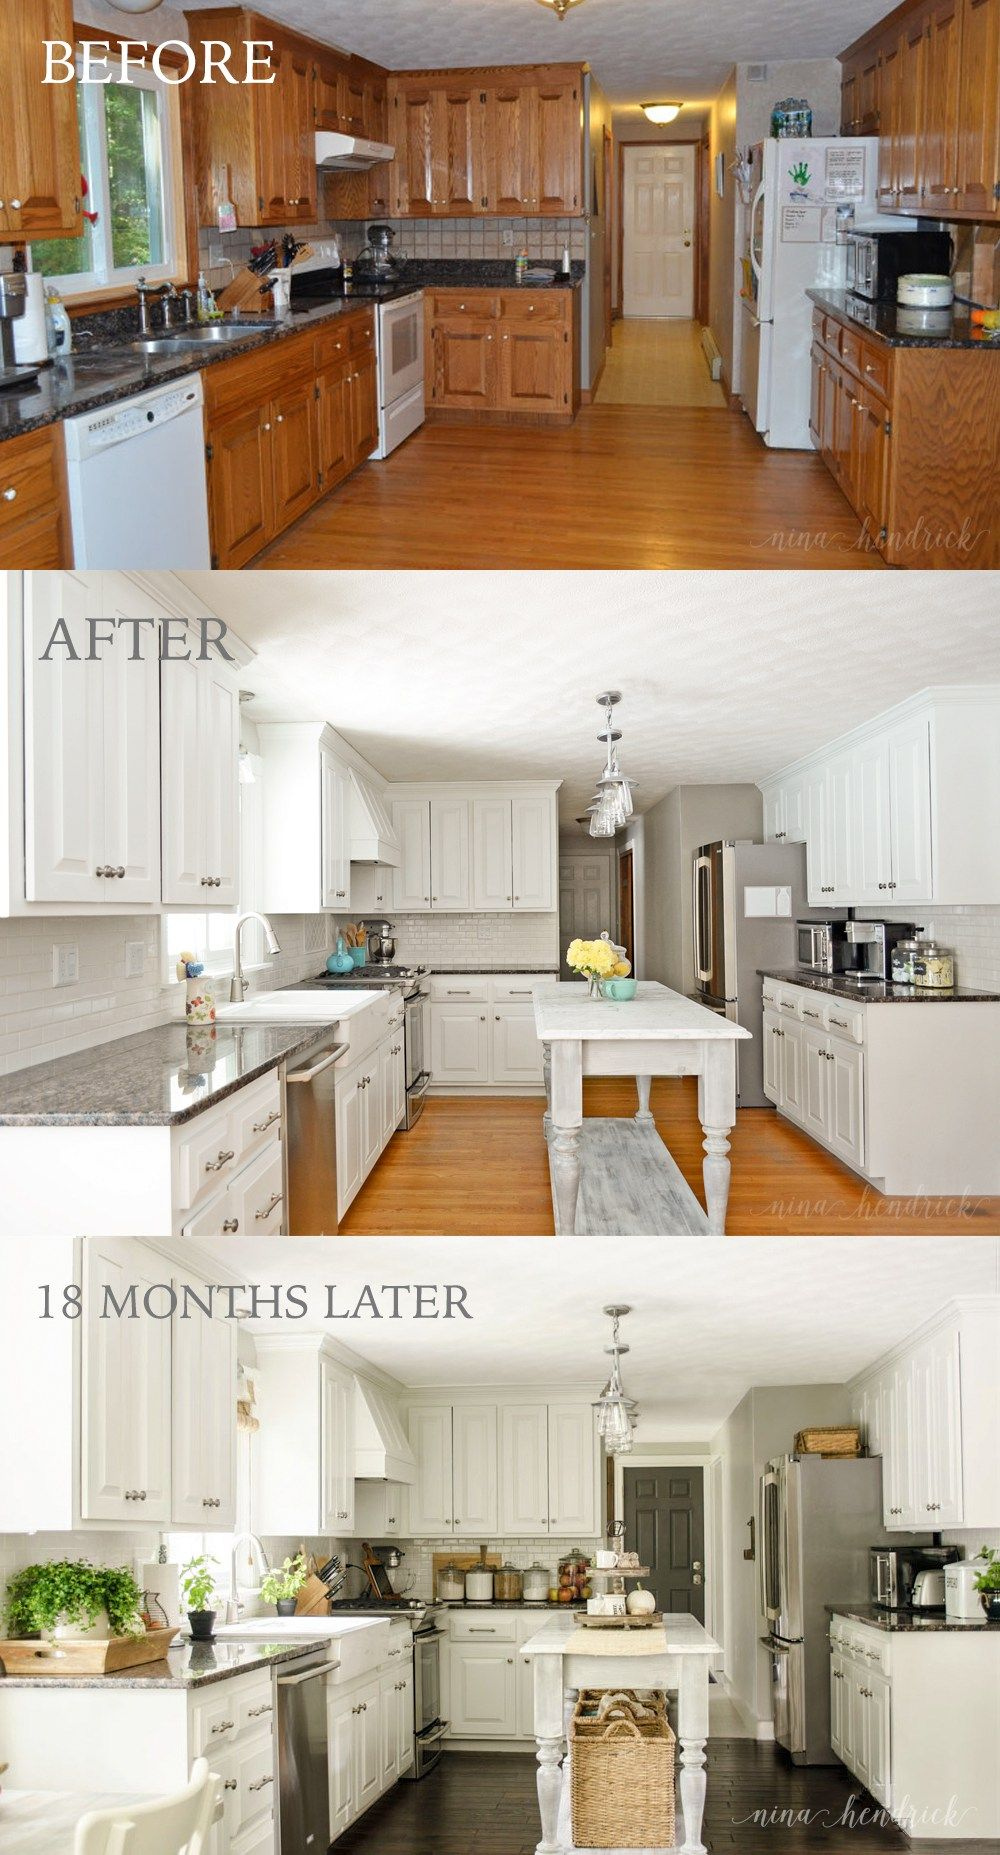 painting oak cabinets white How to Paint Oak Cabinets and Hide the Grain | Kitchen Design  painting oak cabinets white